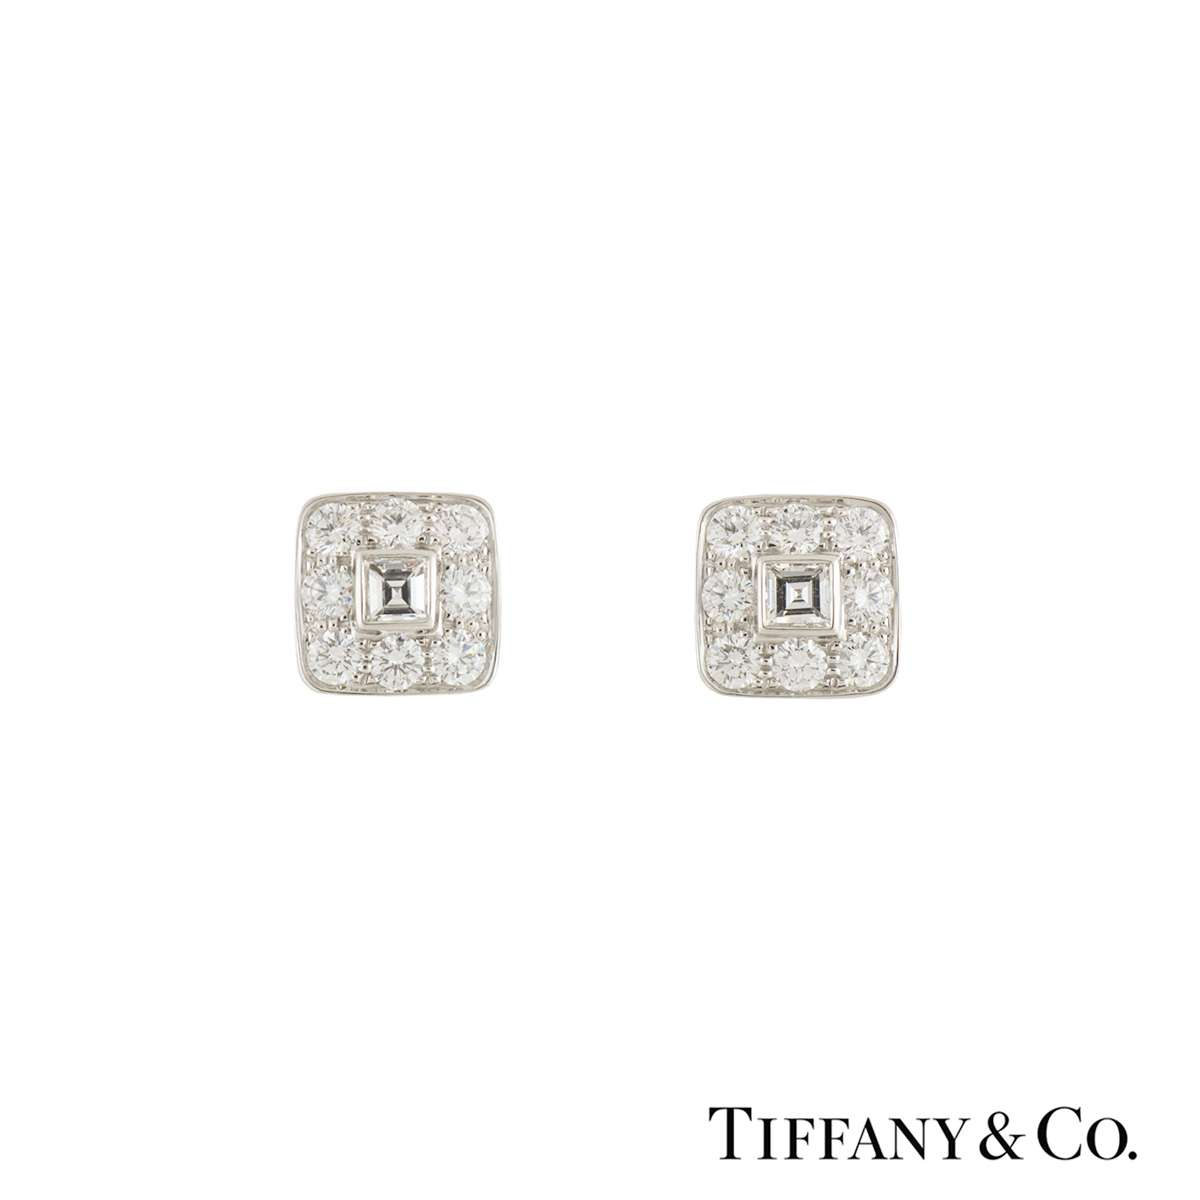 Tiffany & Co. Platinum Diamond Stud Earrings